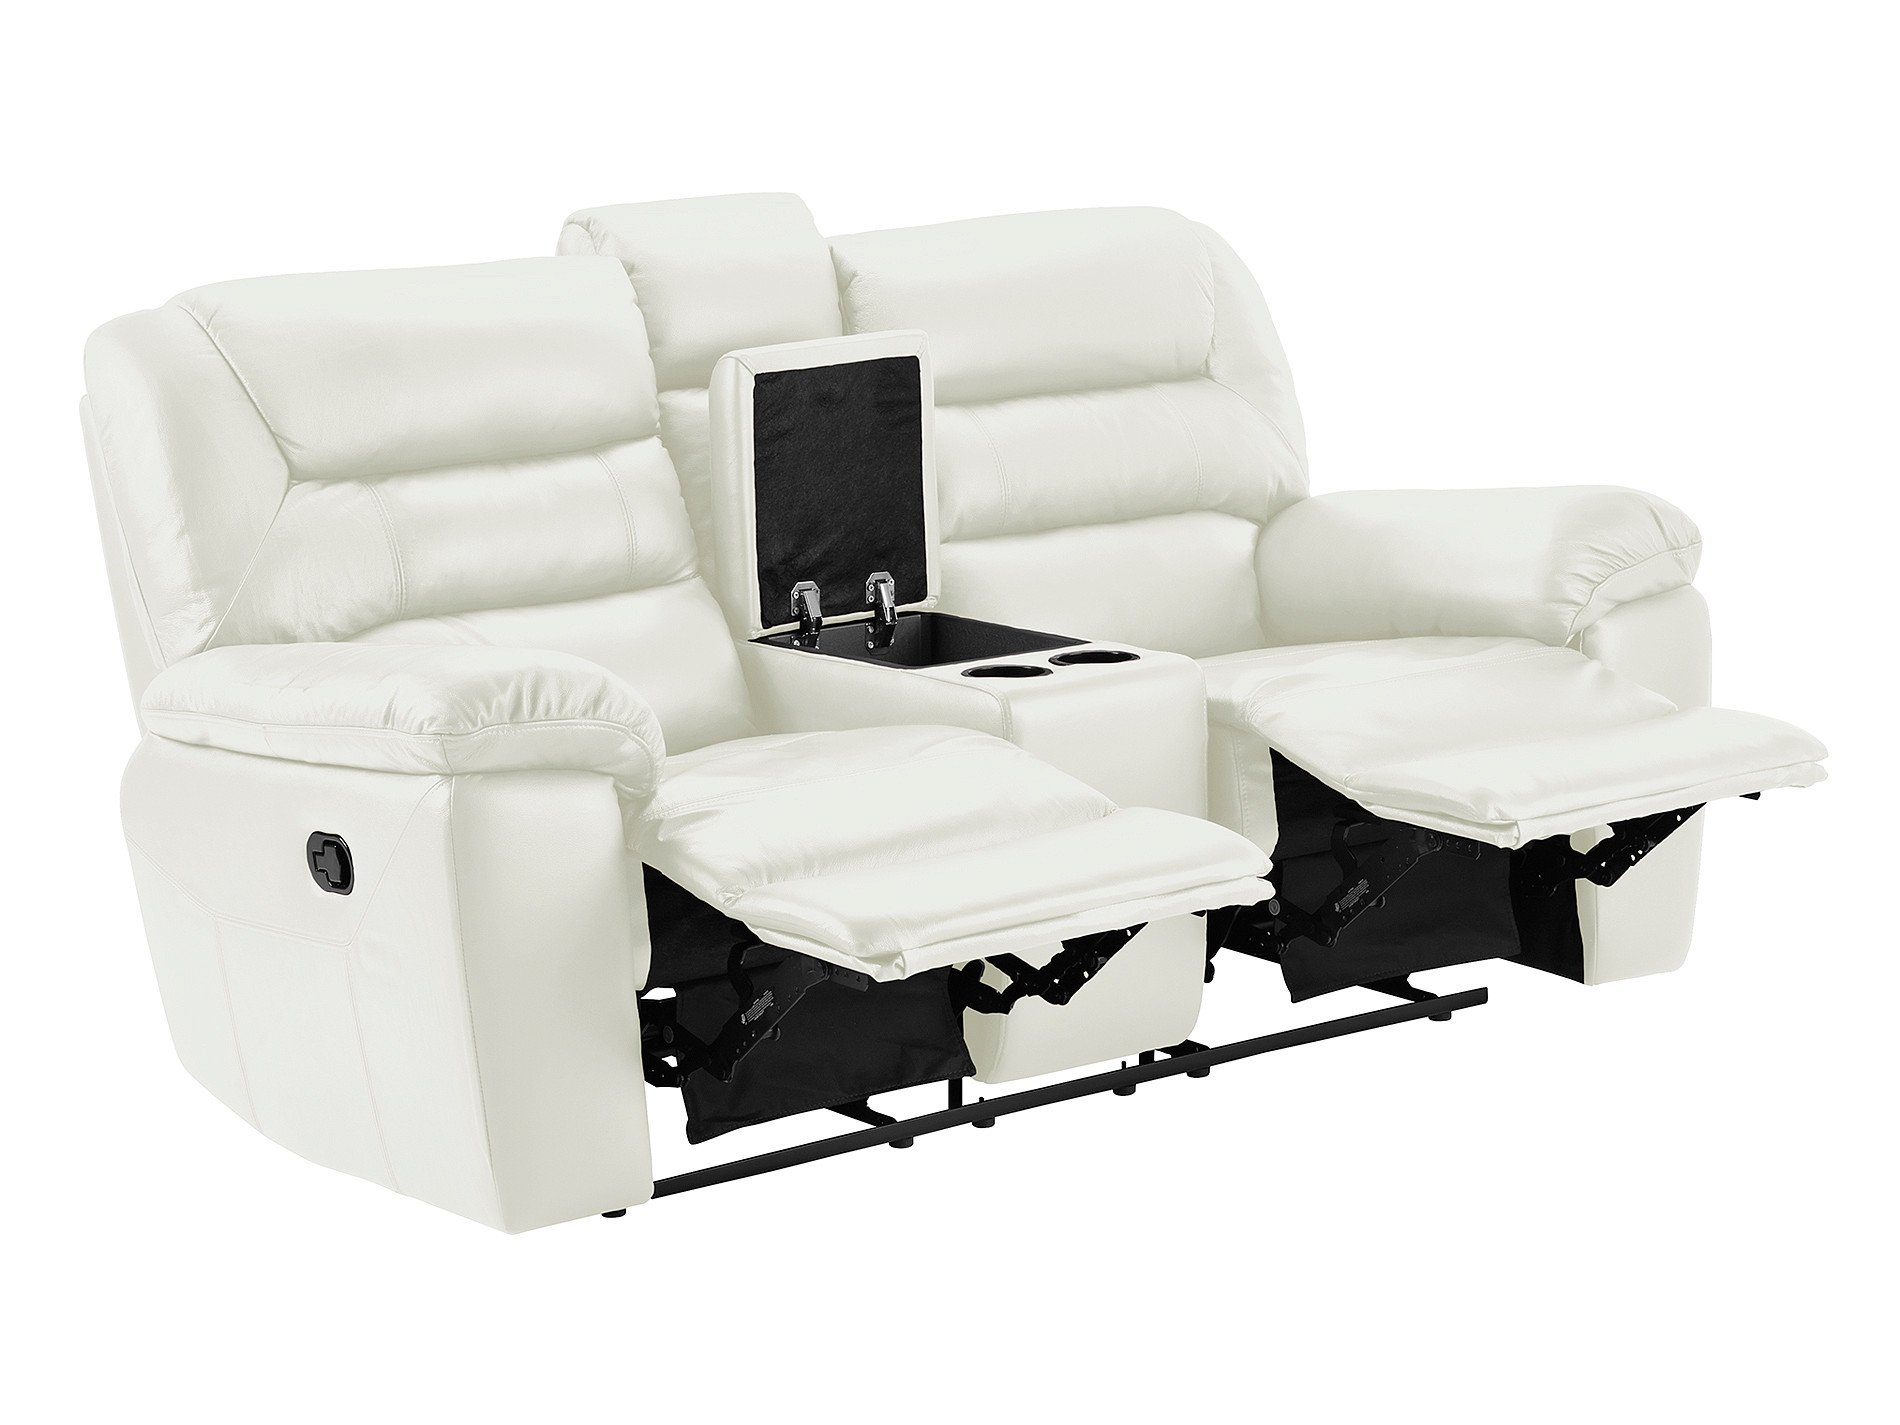 electric recliner leather sofas uk sofa fabric change devon small with recliners off white